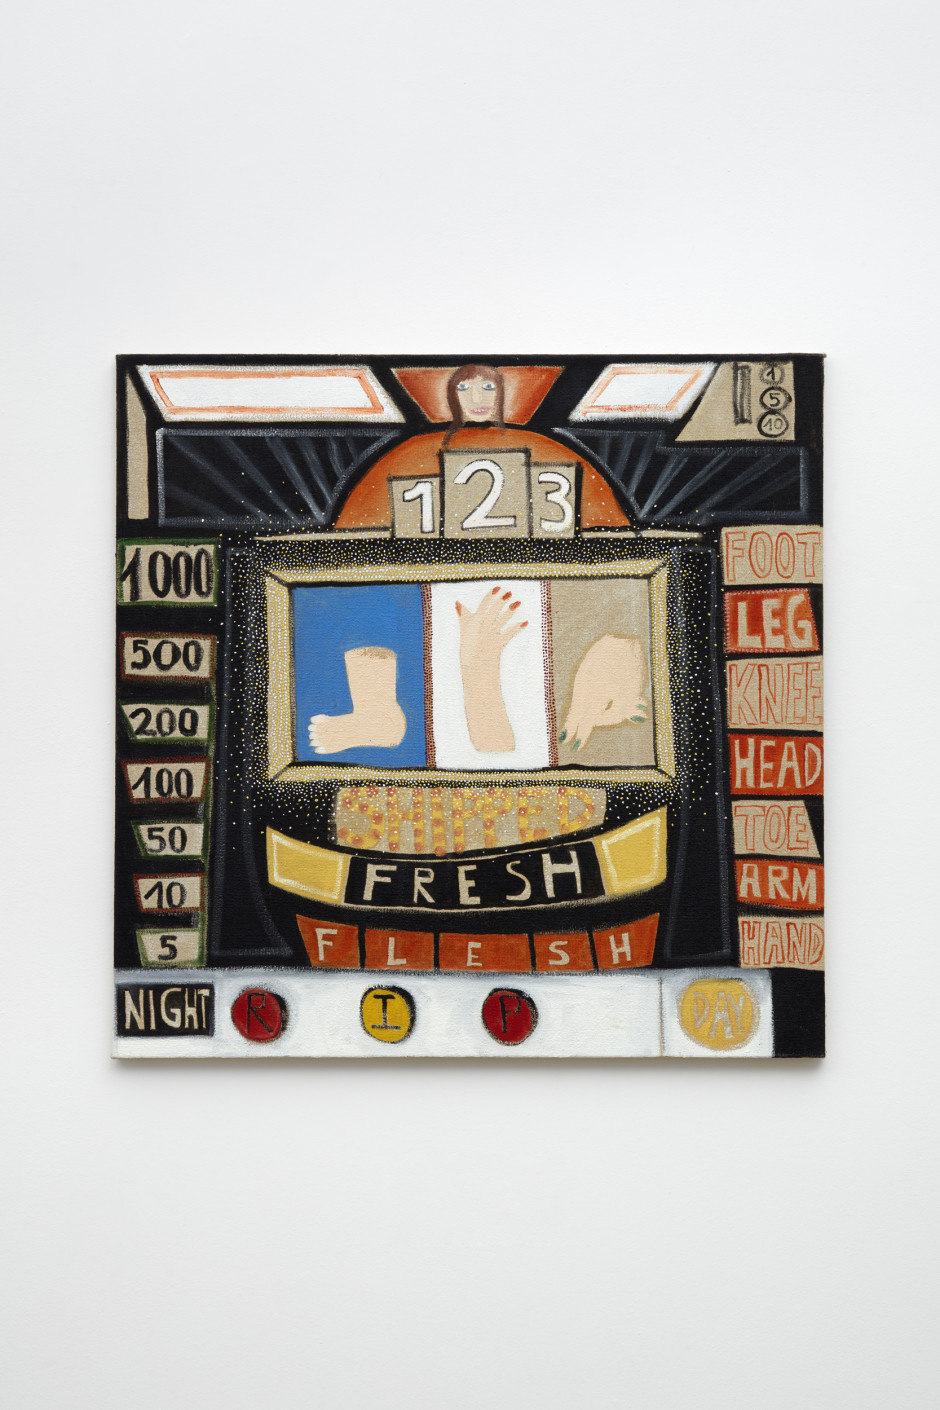 The Slotmachine, 2014  oil on hessian  81 x 81.2 x 2.5 cm /31 7/8 x 32 x 1 in.